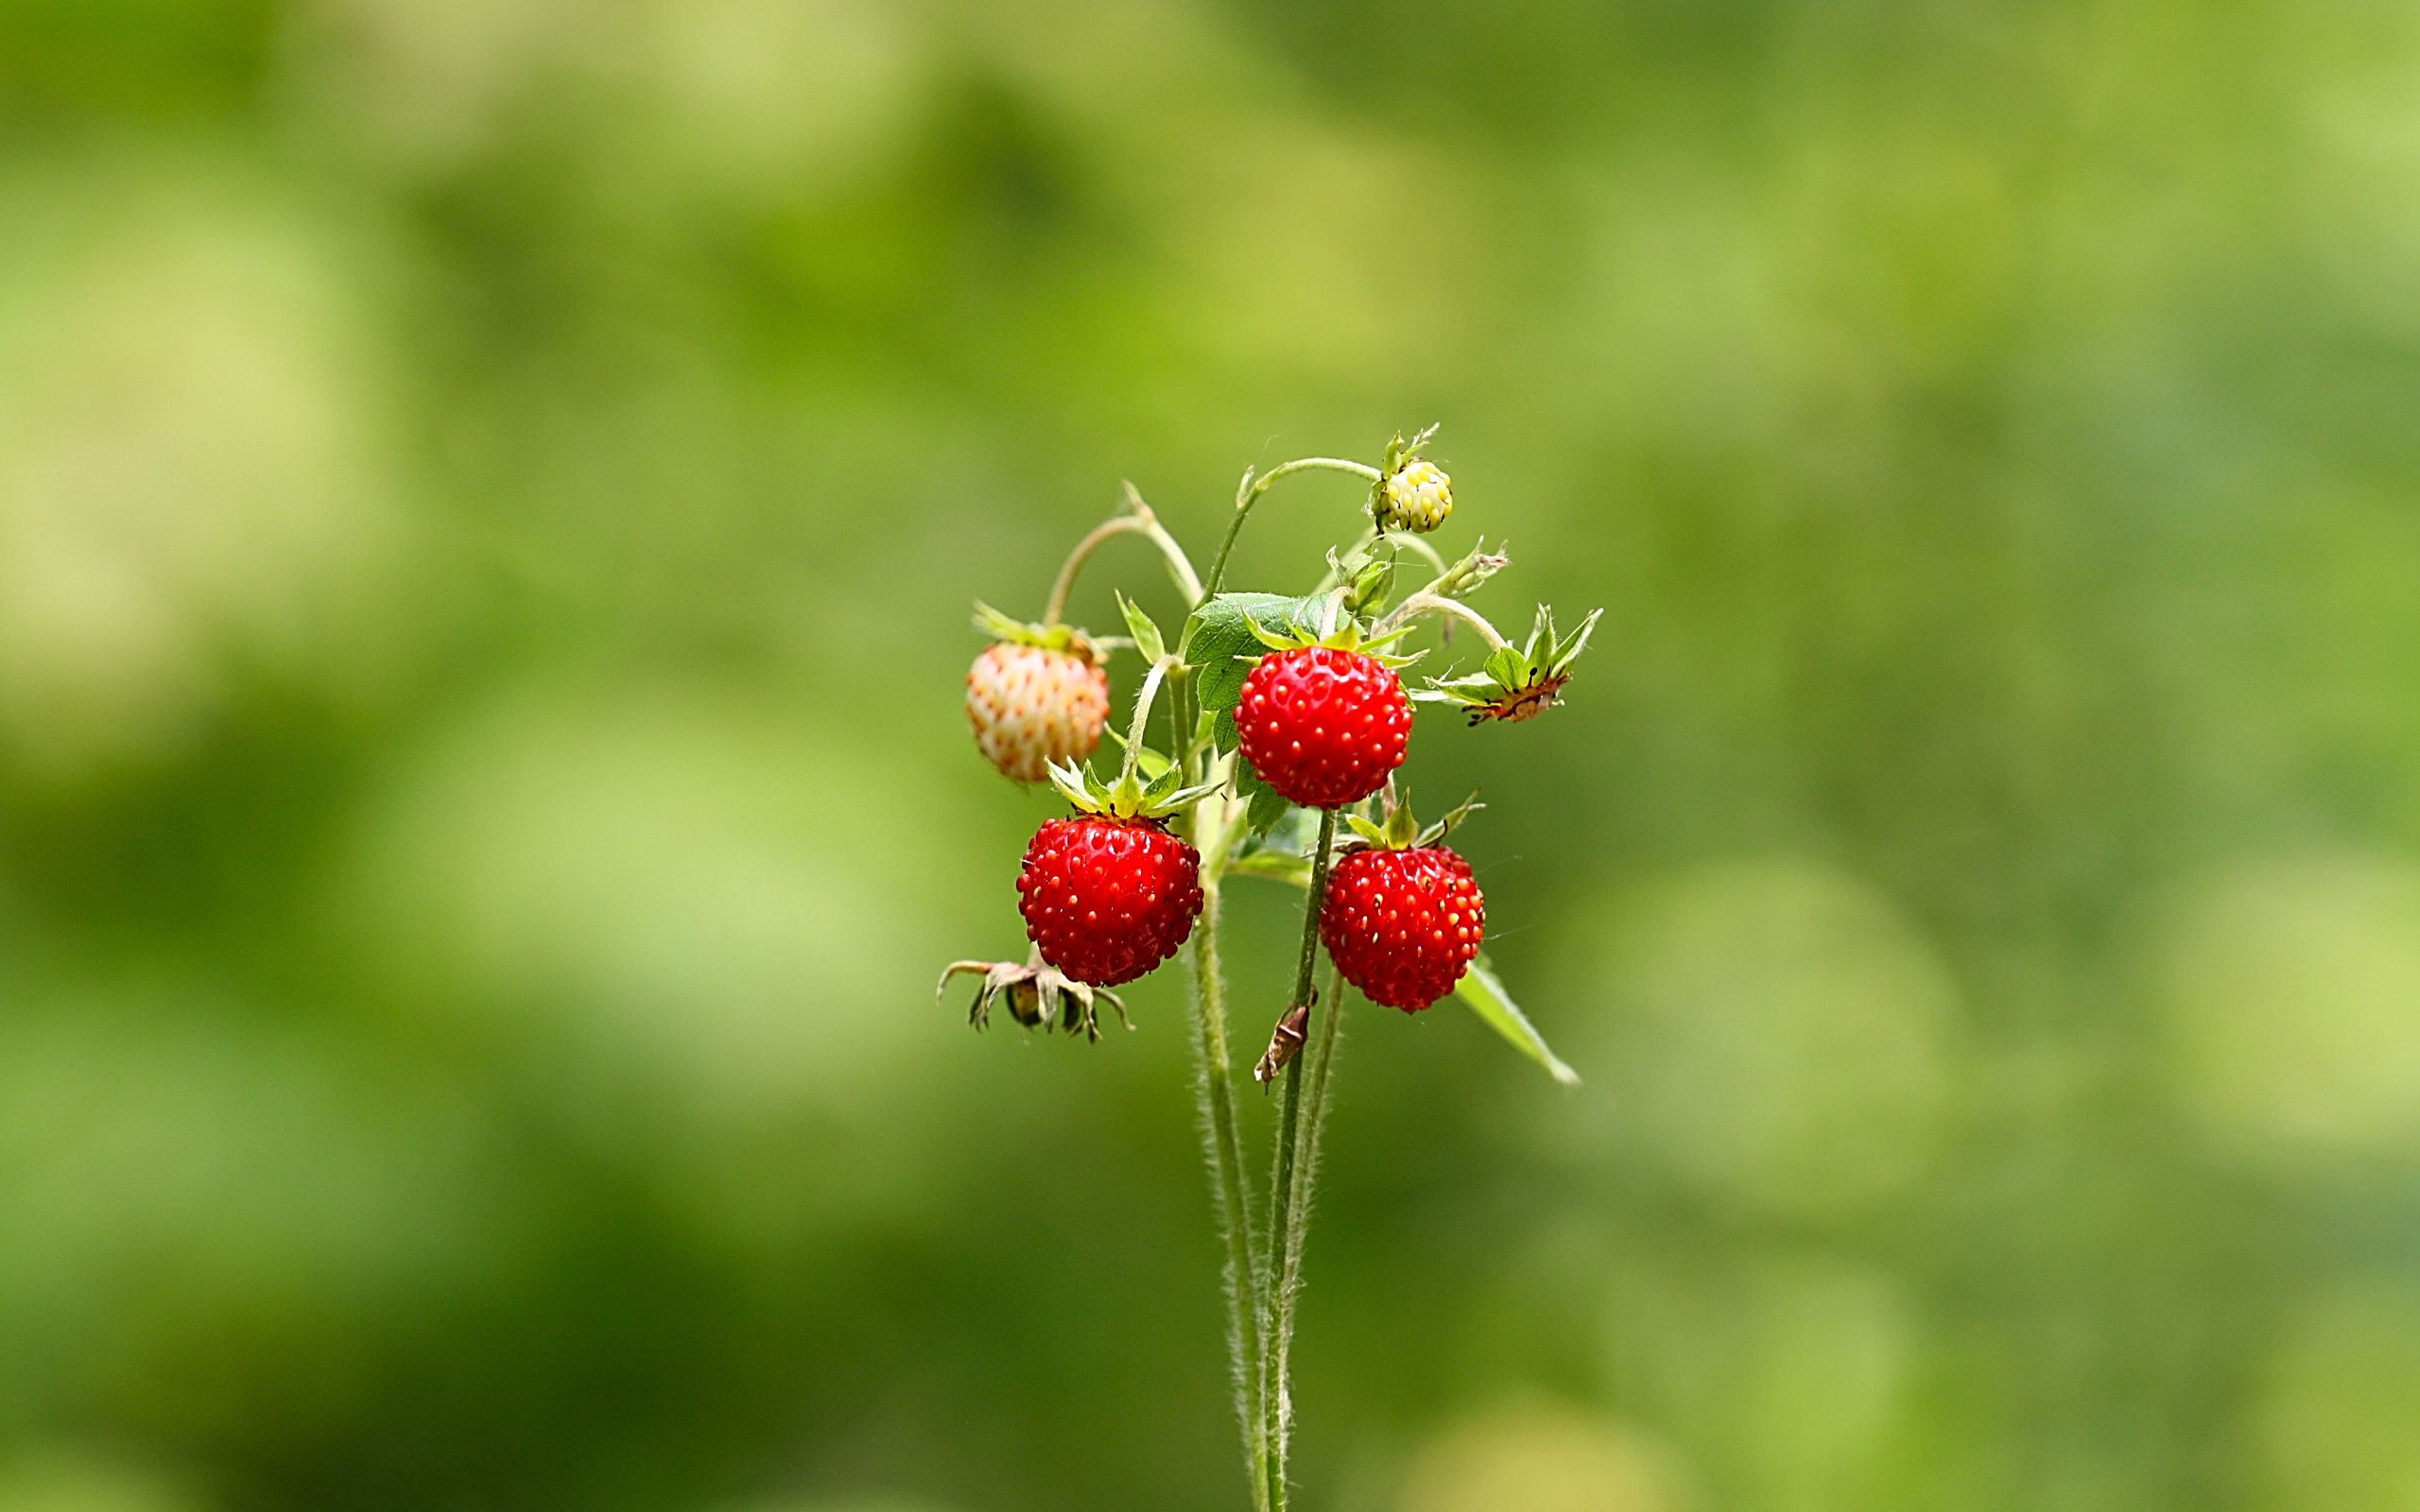 117992 download wallpaper Strawberry, Summer, Macro, Forest, Greens, Wild Strawberries screensavers and pictures for free